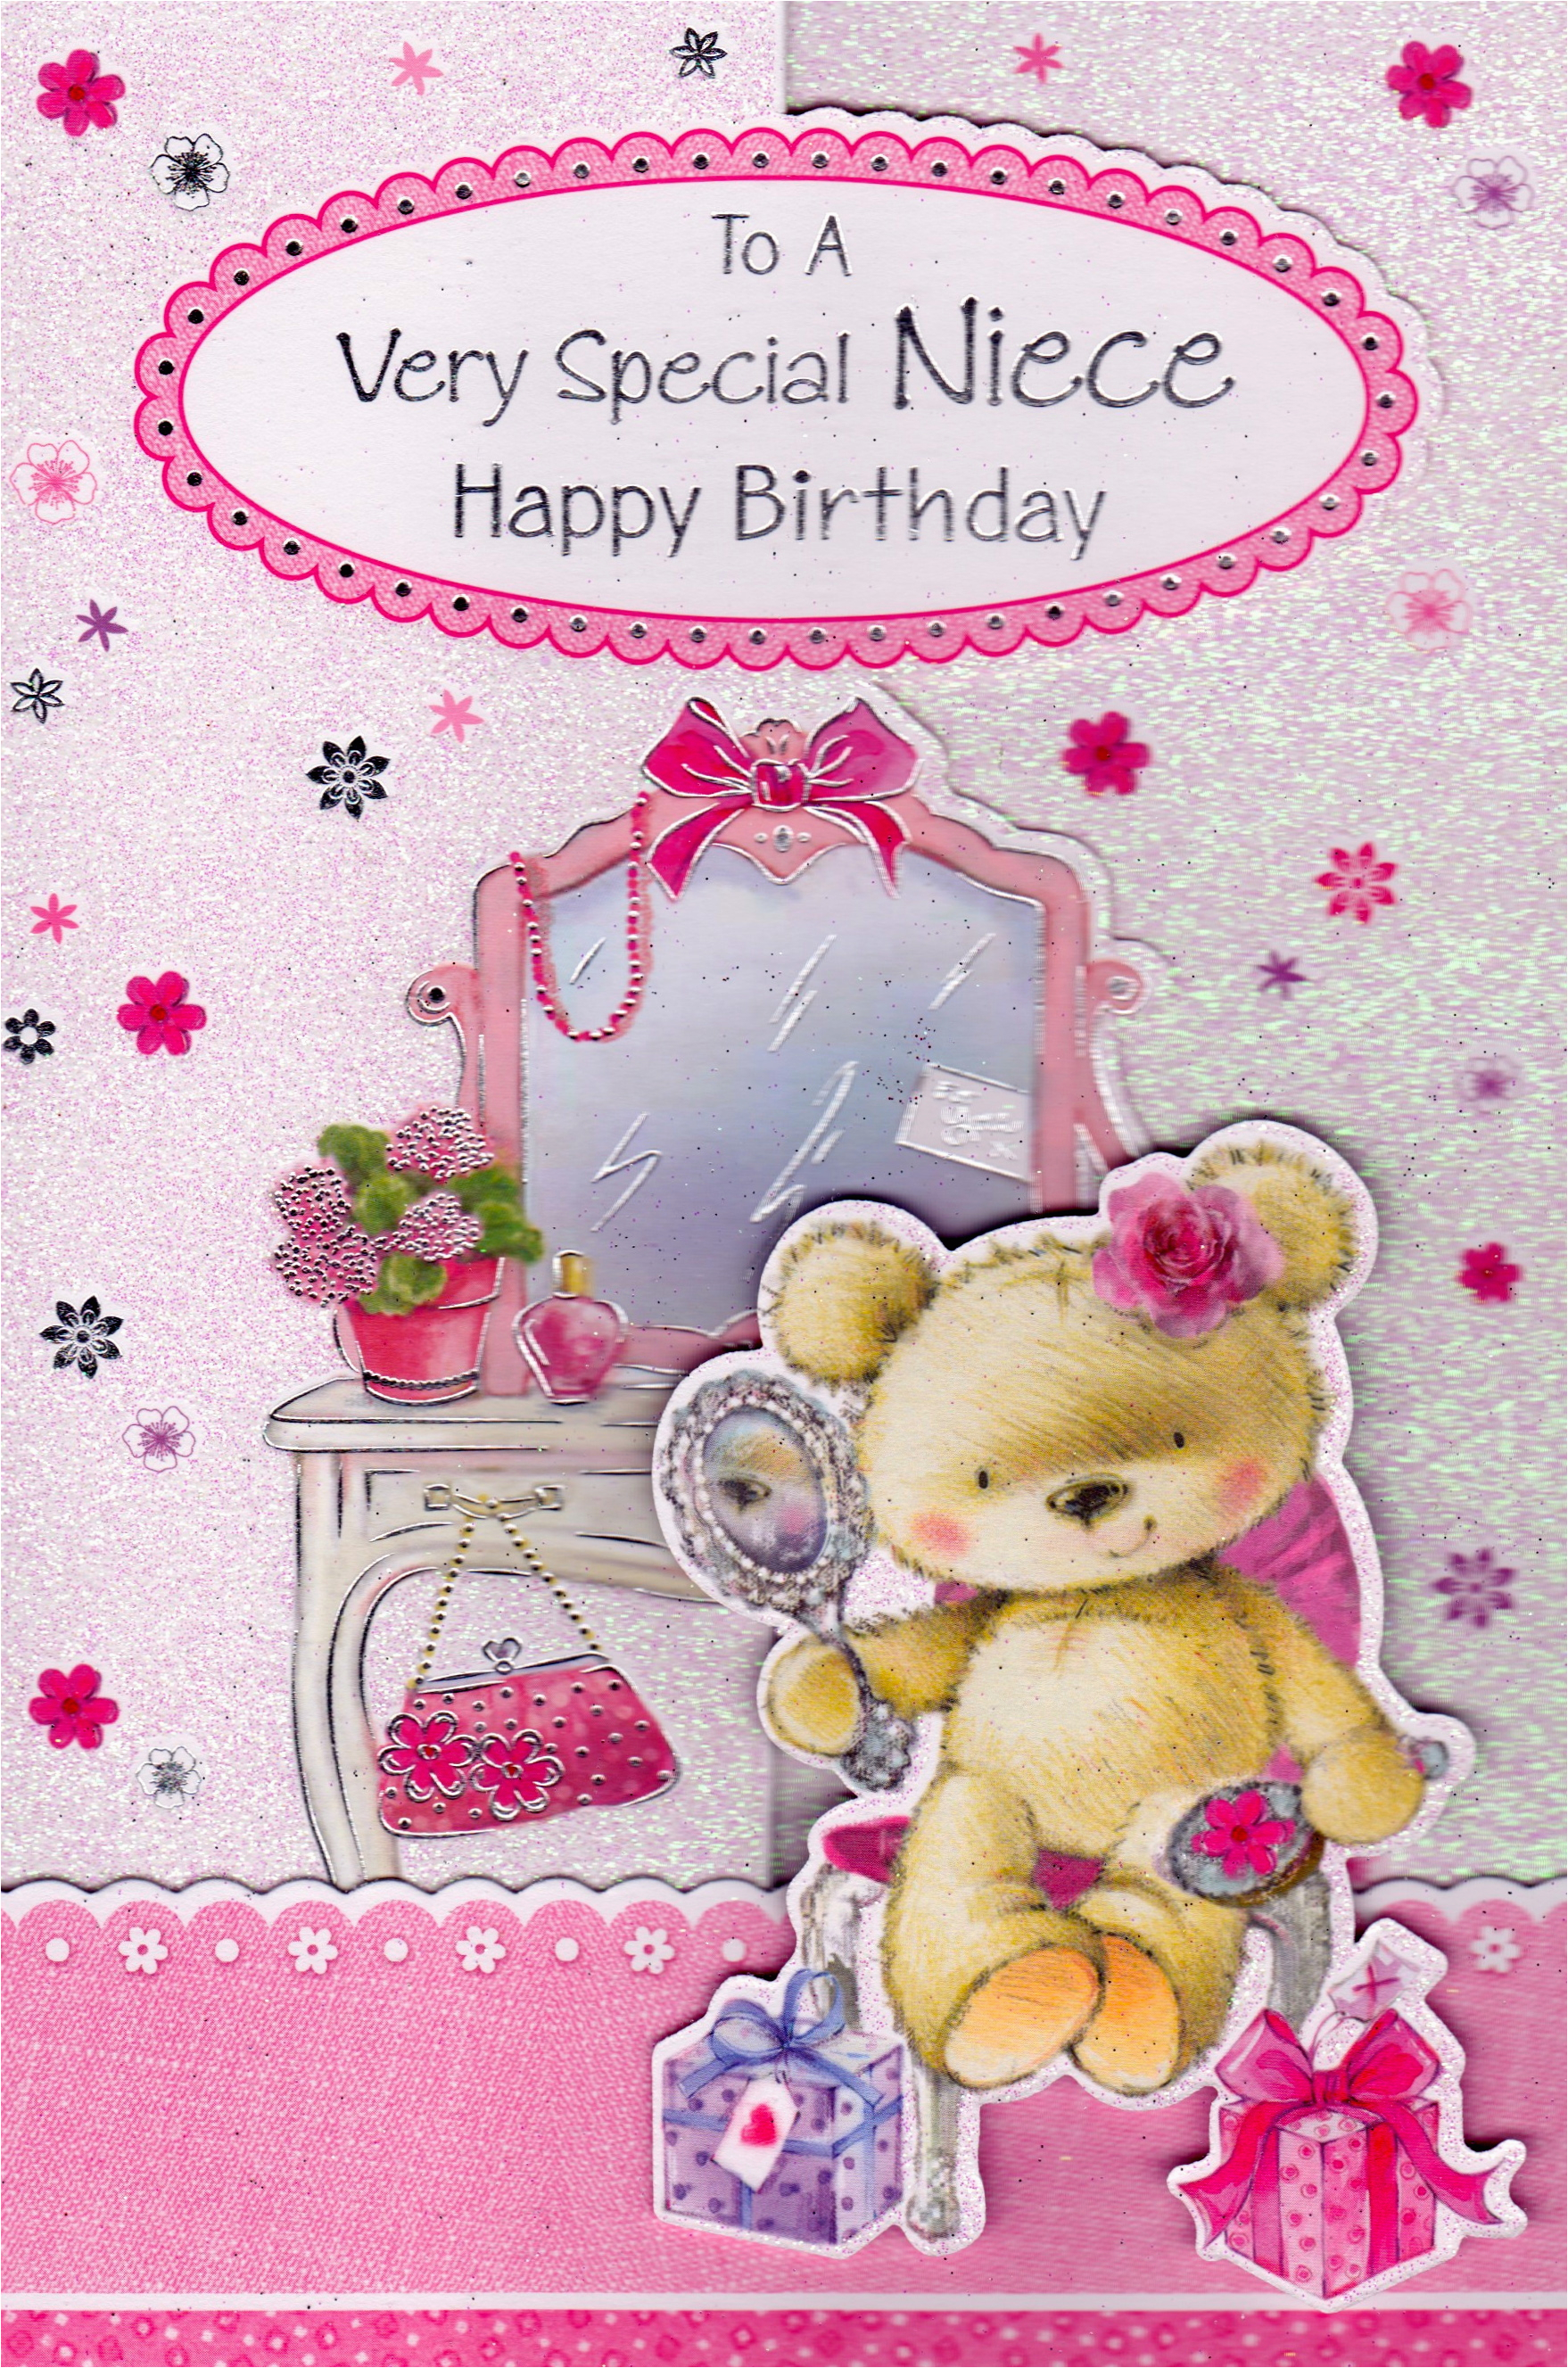 birthday card images for niece birthday wishes for niece